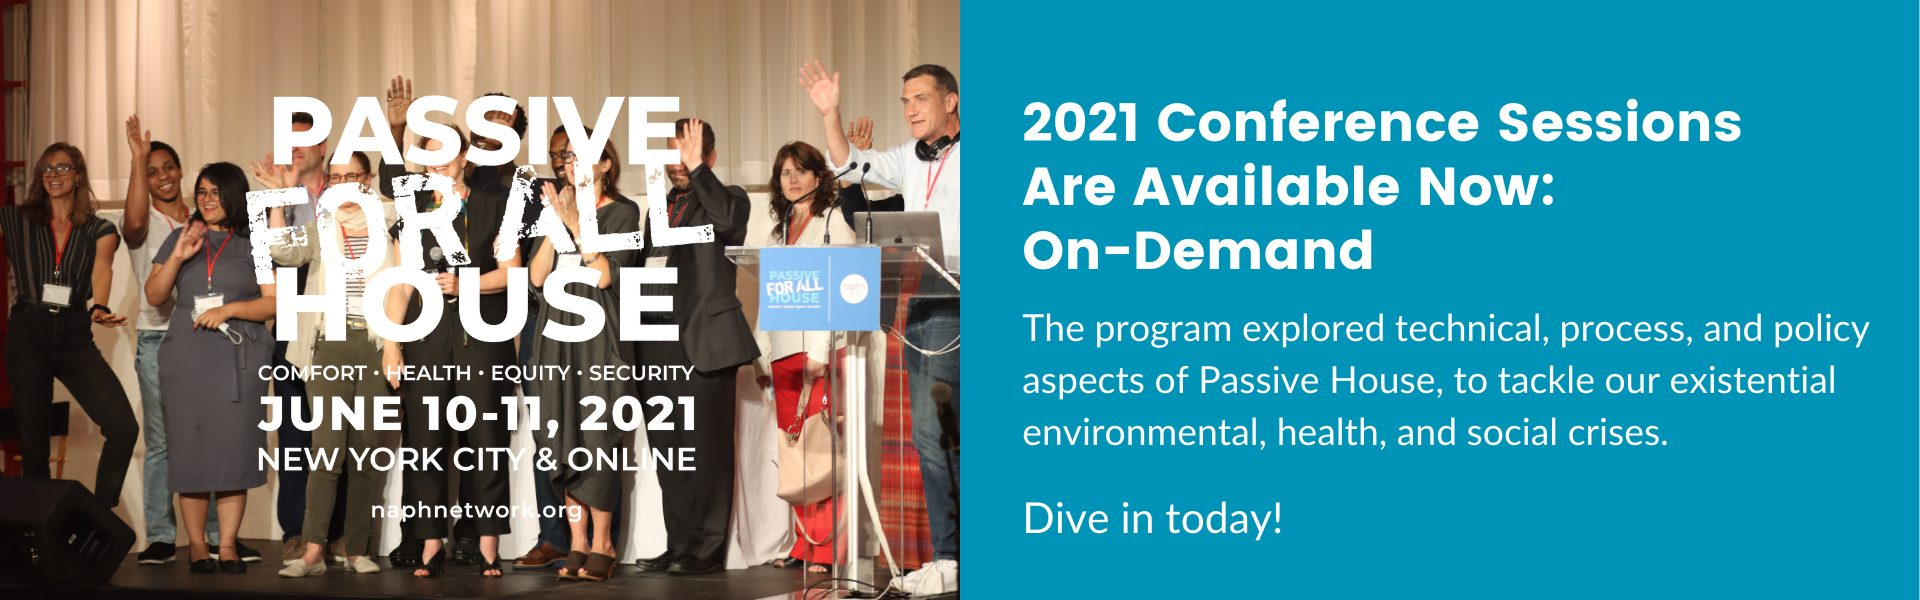 Watch the PH2021 Conference Sessions On-Demand